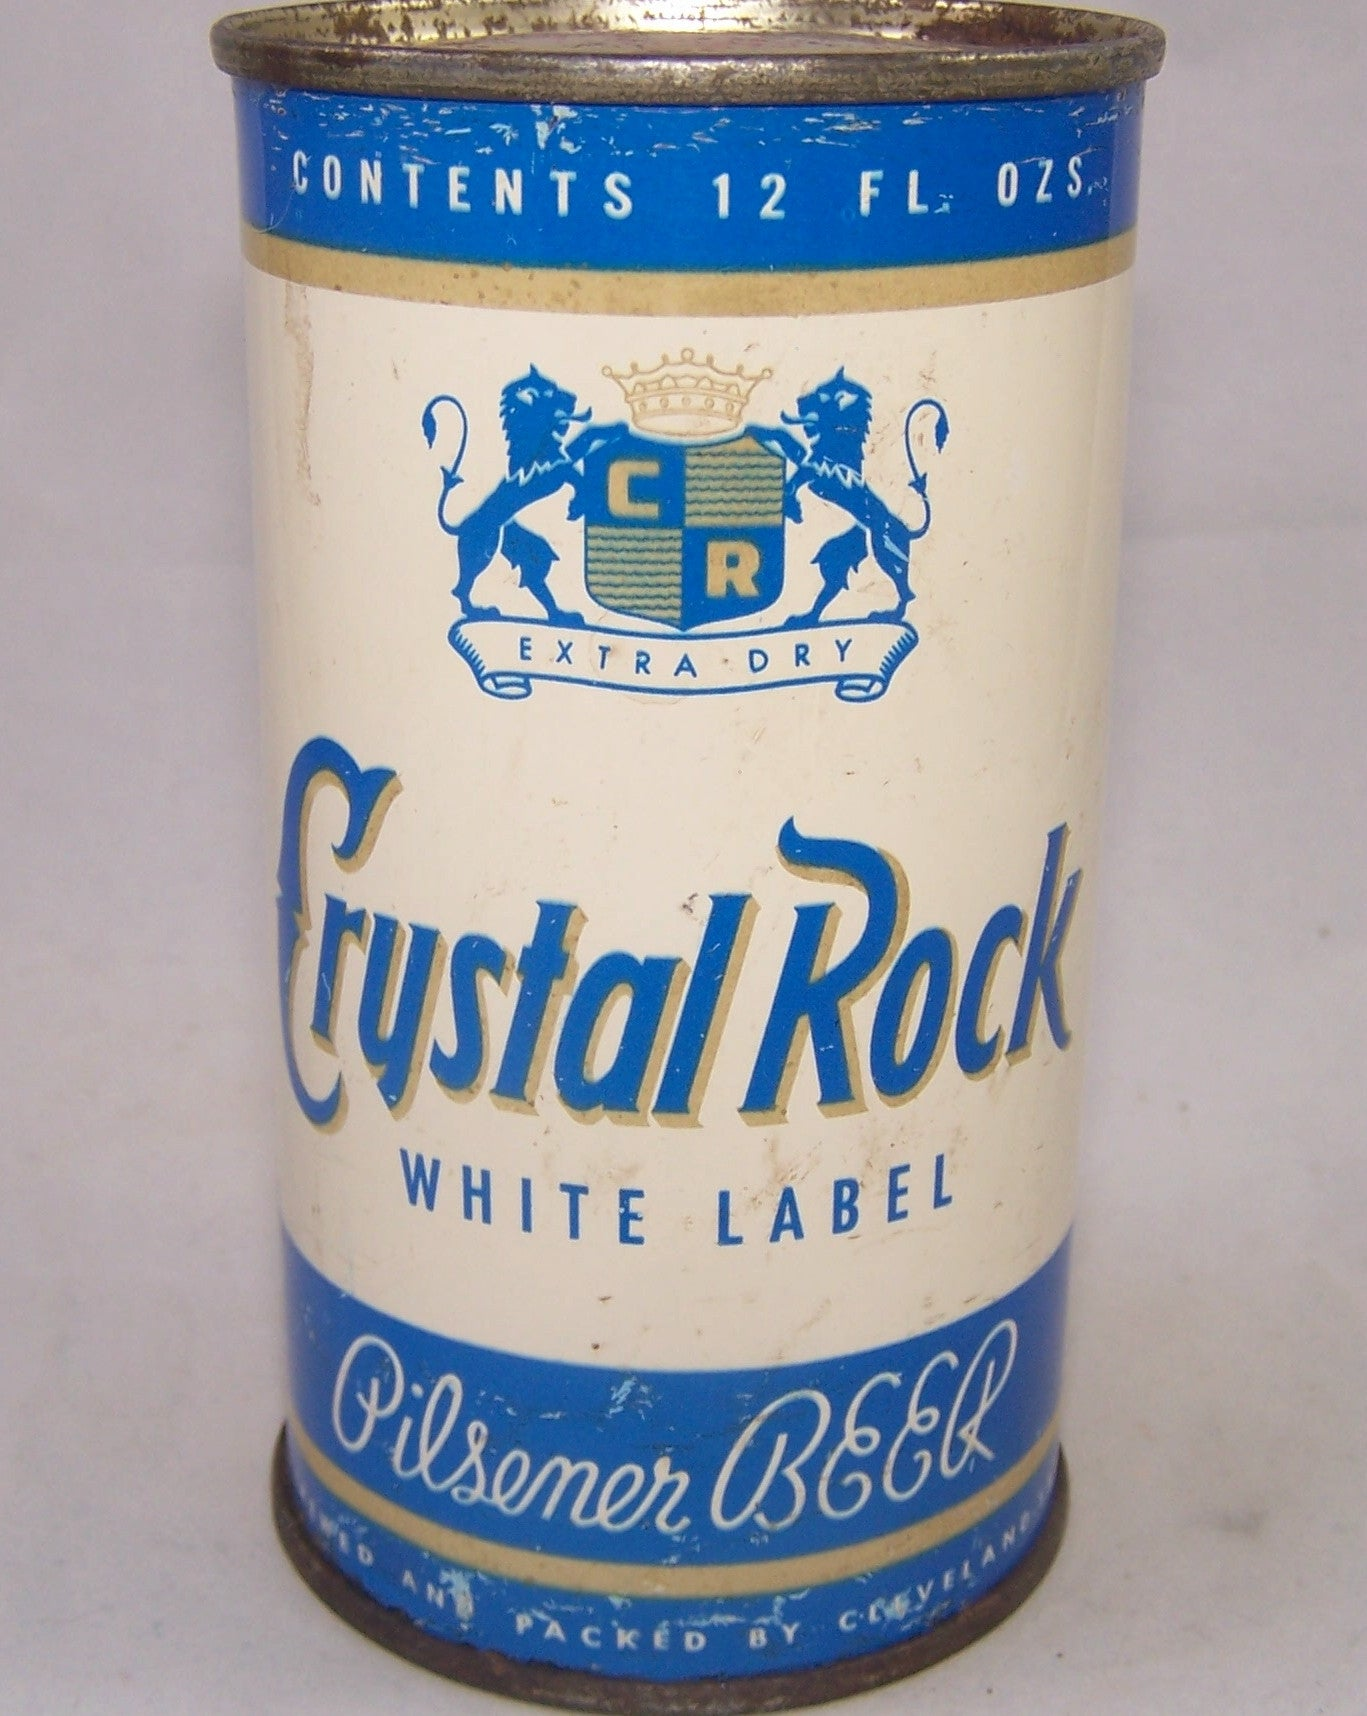 Crystal Rock White Label Beer, USBC 52-40, Grade 1-